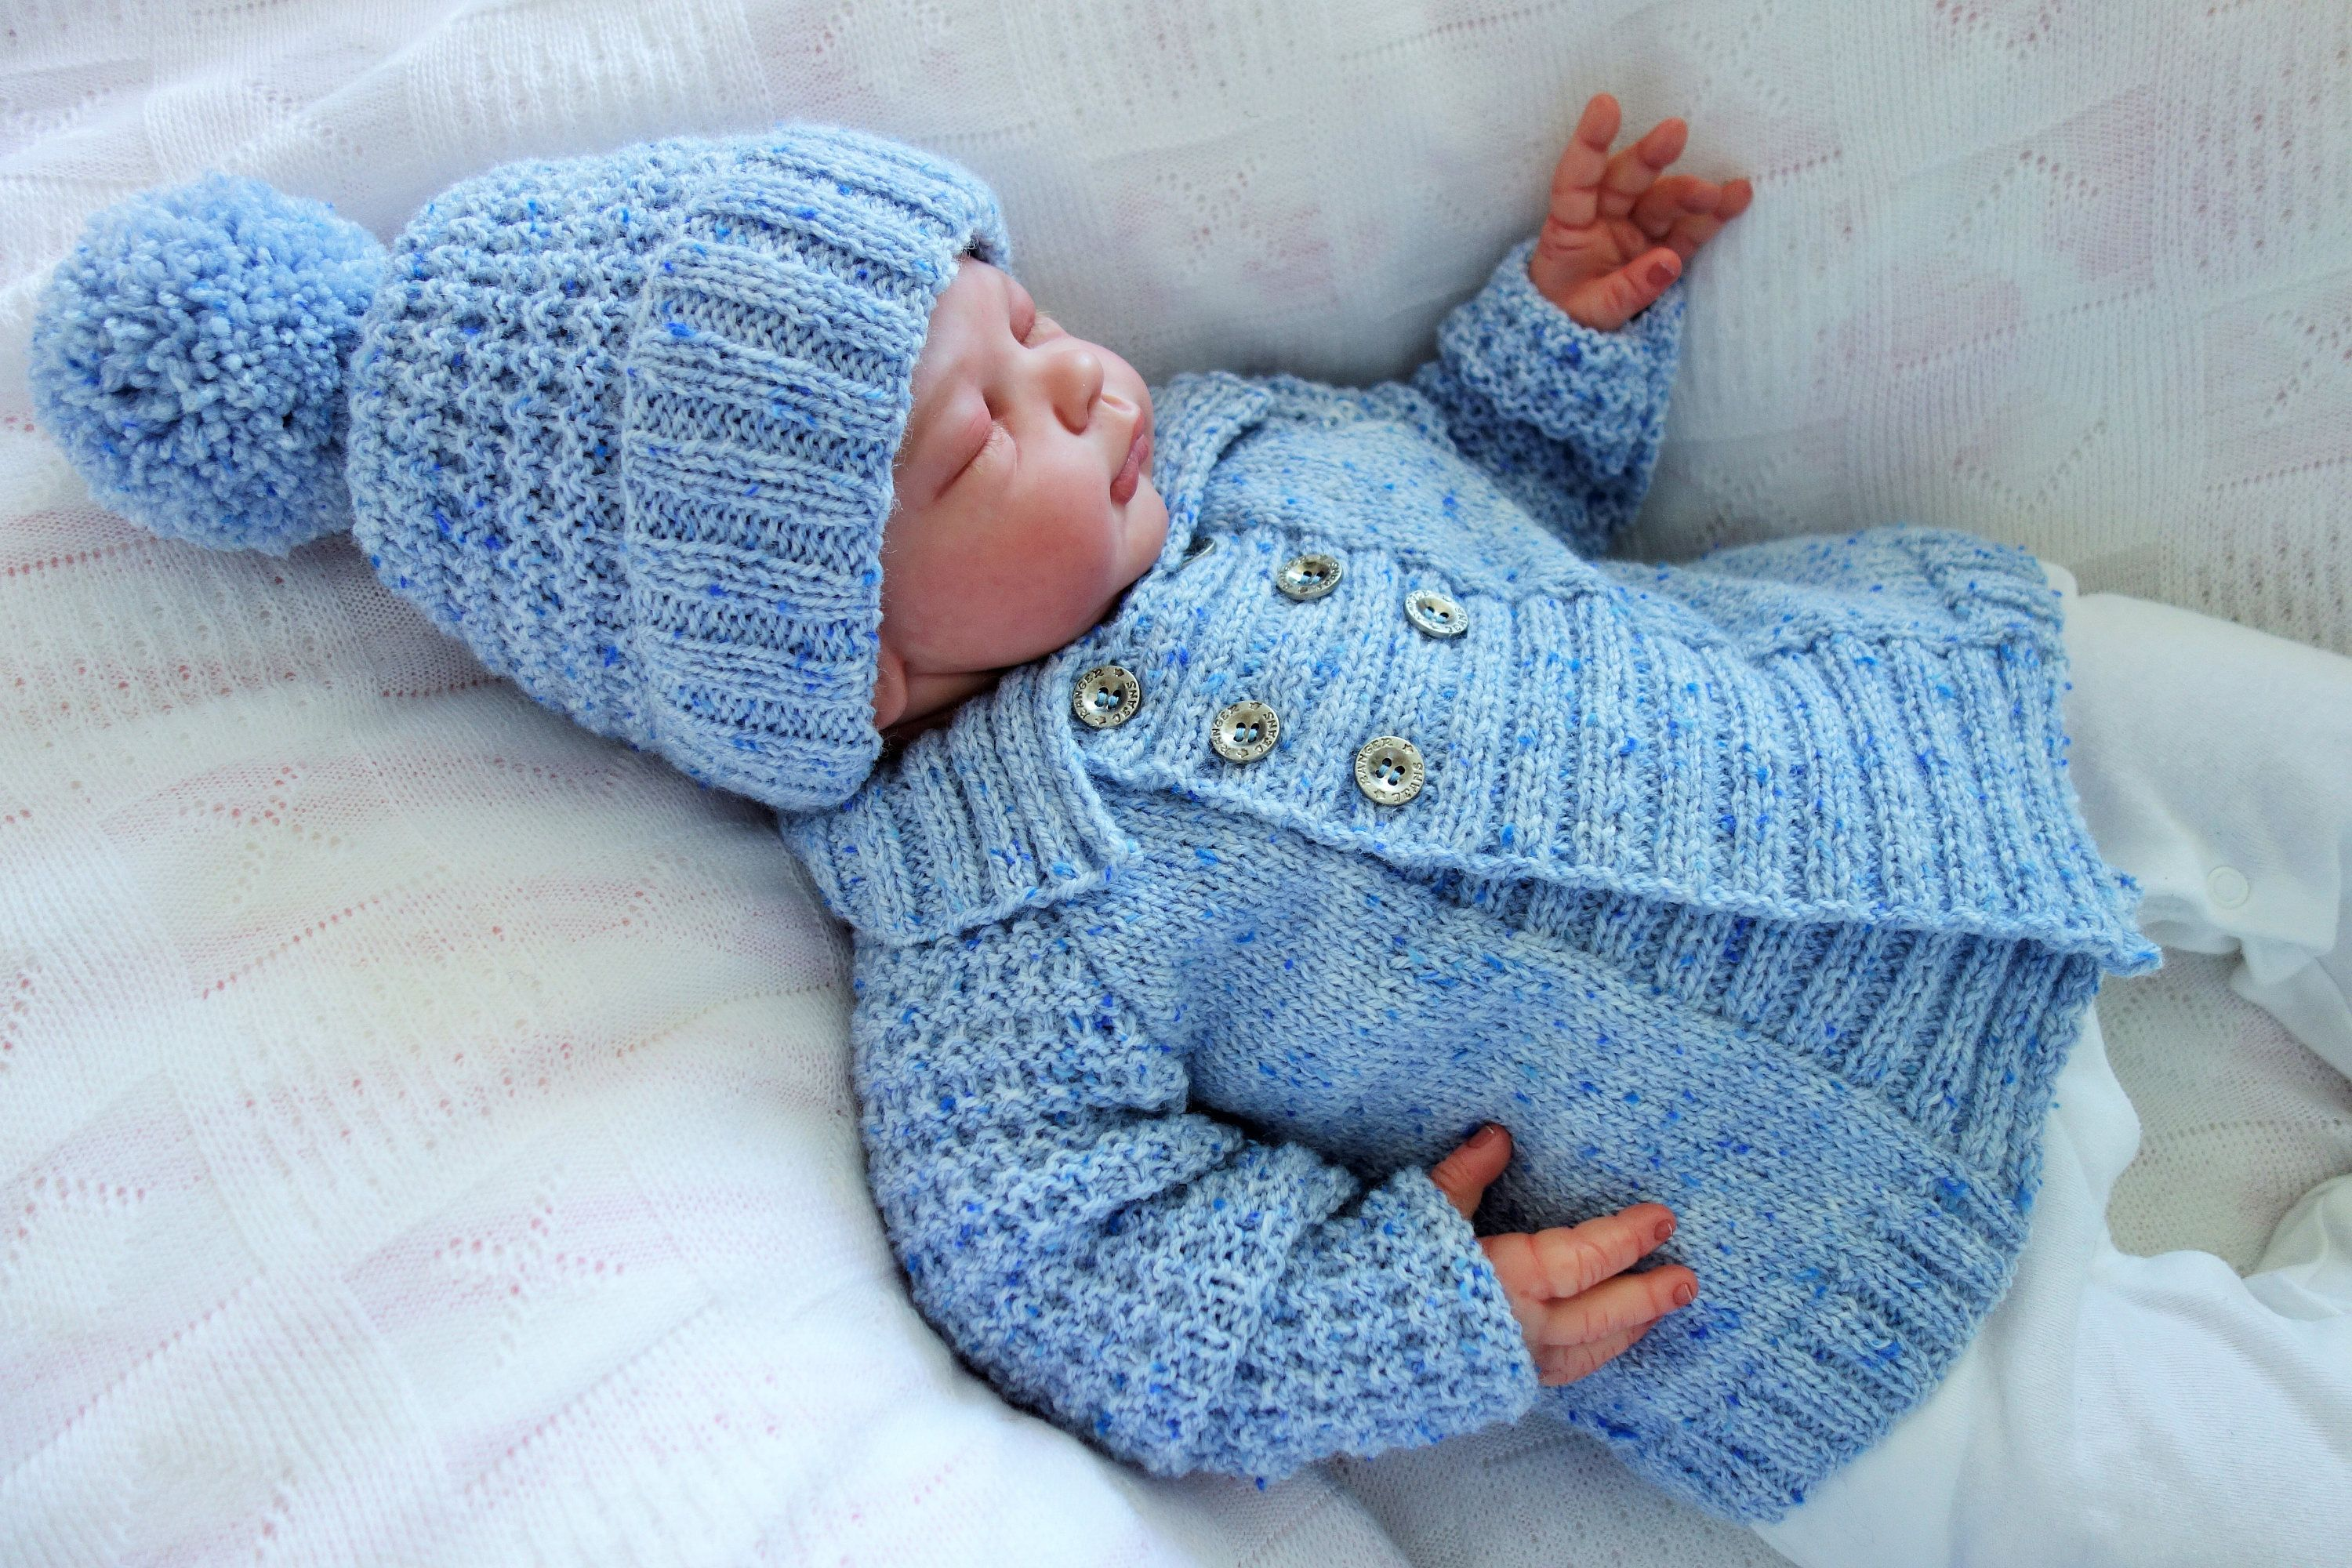 a73f17f4d Hand knitted baby boy s double breasted cardigan sweater with flat ...